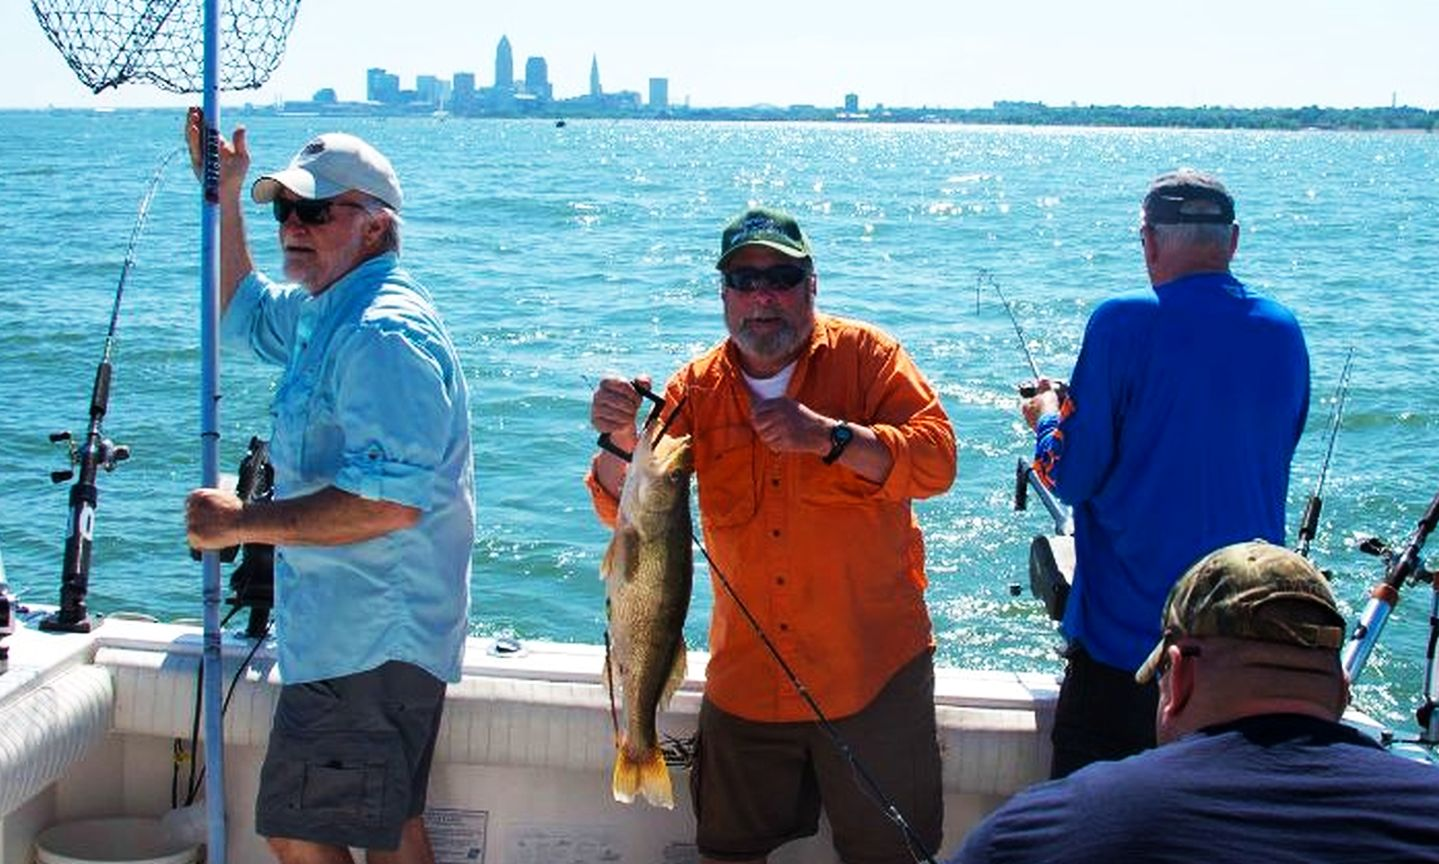 Cleveland metroparks for Ohio fishing report 2017